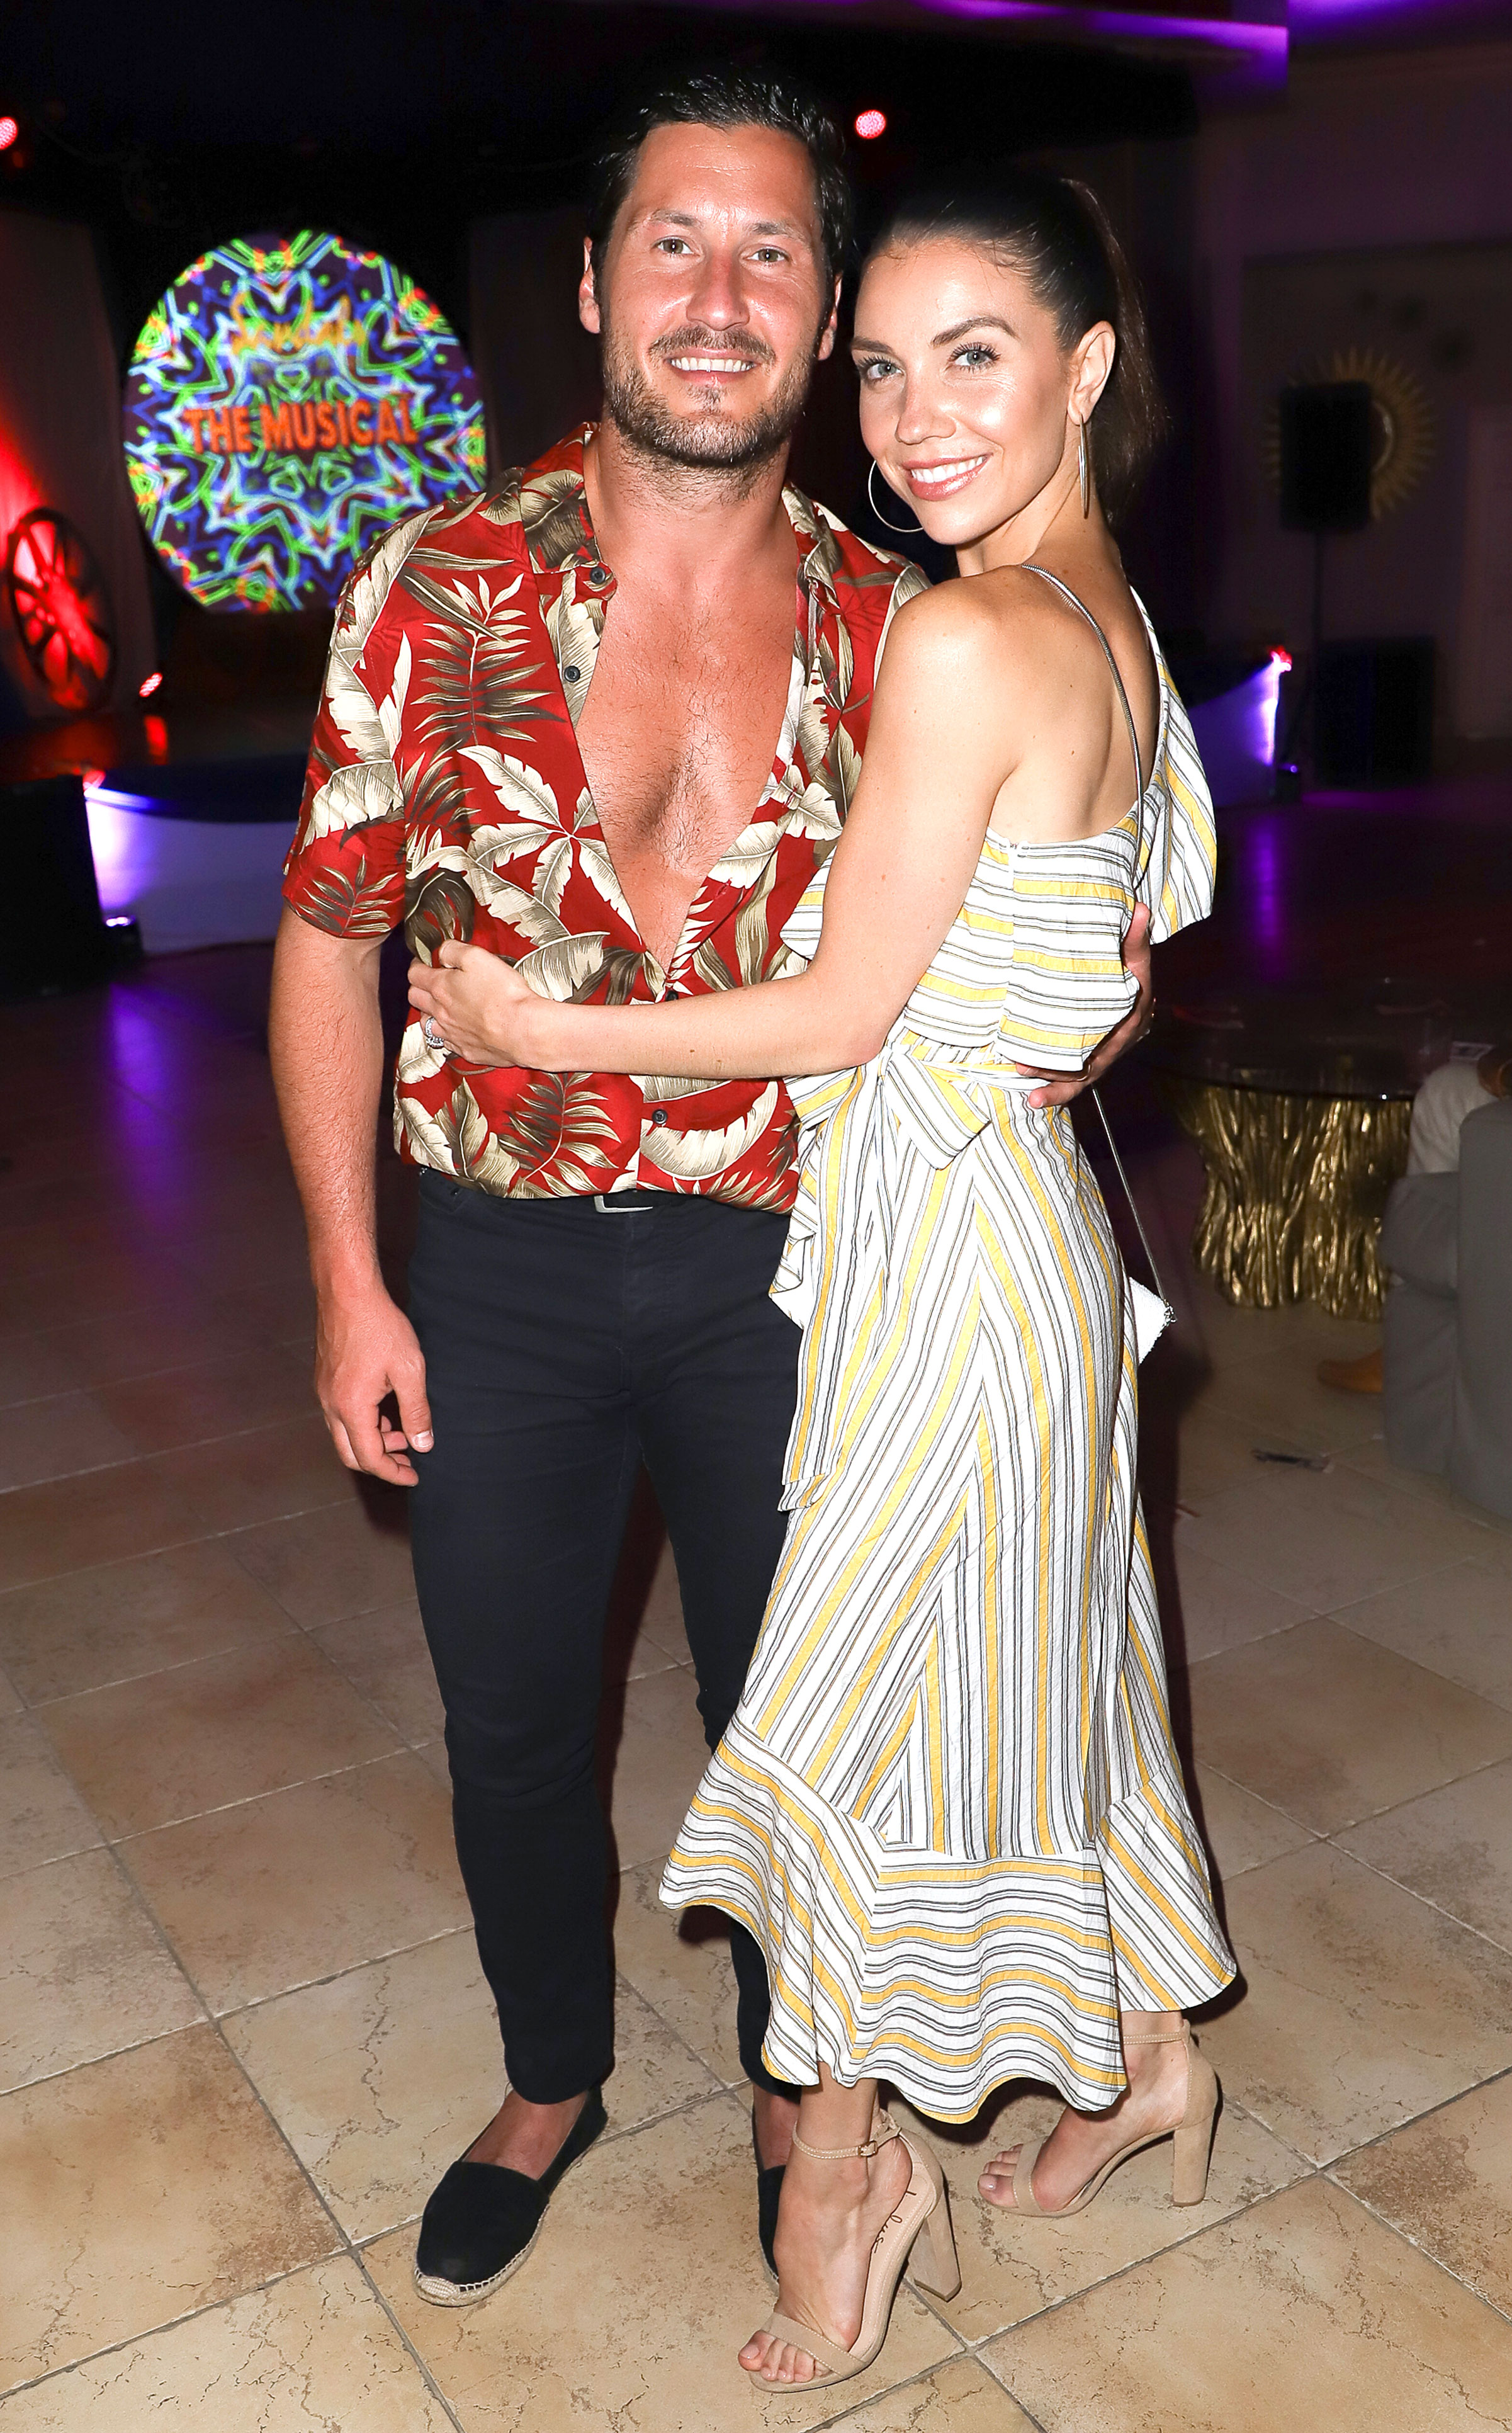 Val Jenna Chmerkovskiy Parents Met at Wedding - Val Chmerkovskiy and Jenna Johnson spend their honeymoon at the luxurious Sandals Grande St. Lucian resort on April 23, 2019 in St Lucia, Saint Lucia.